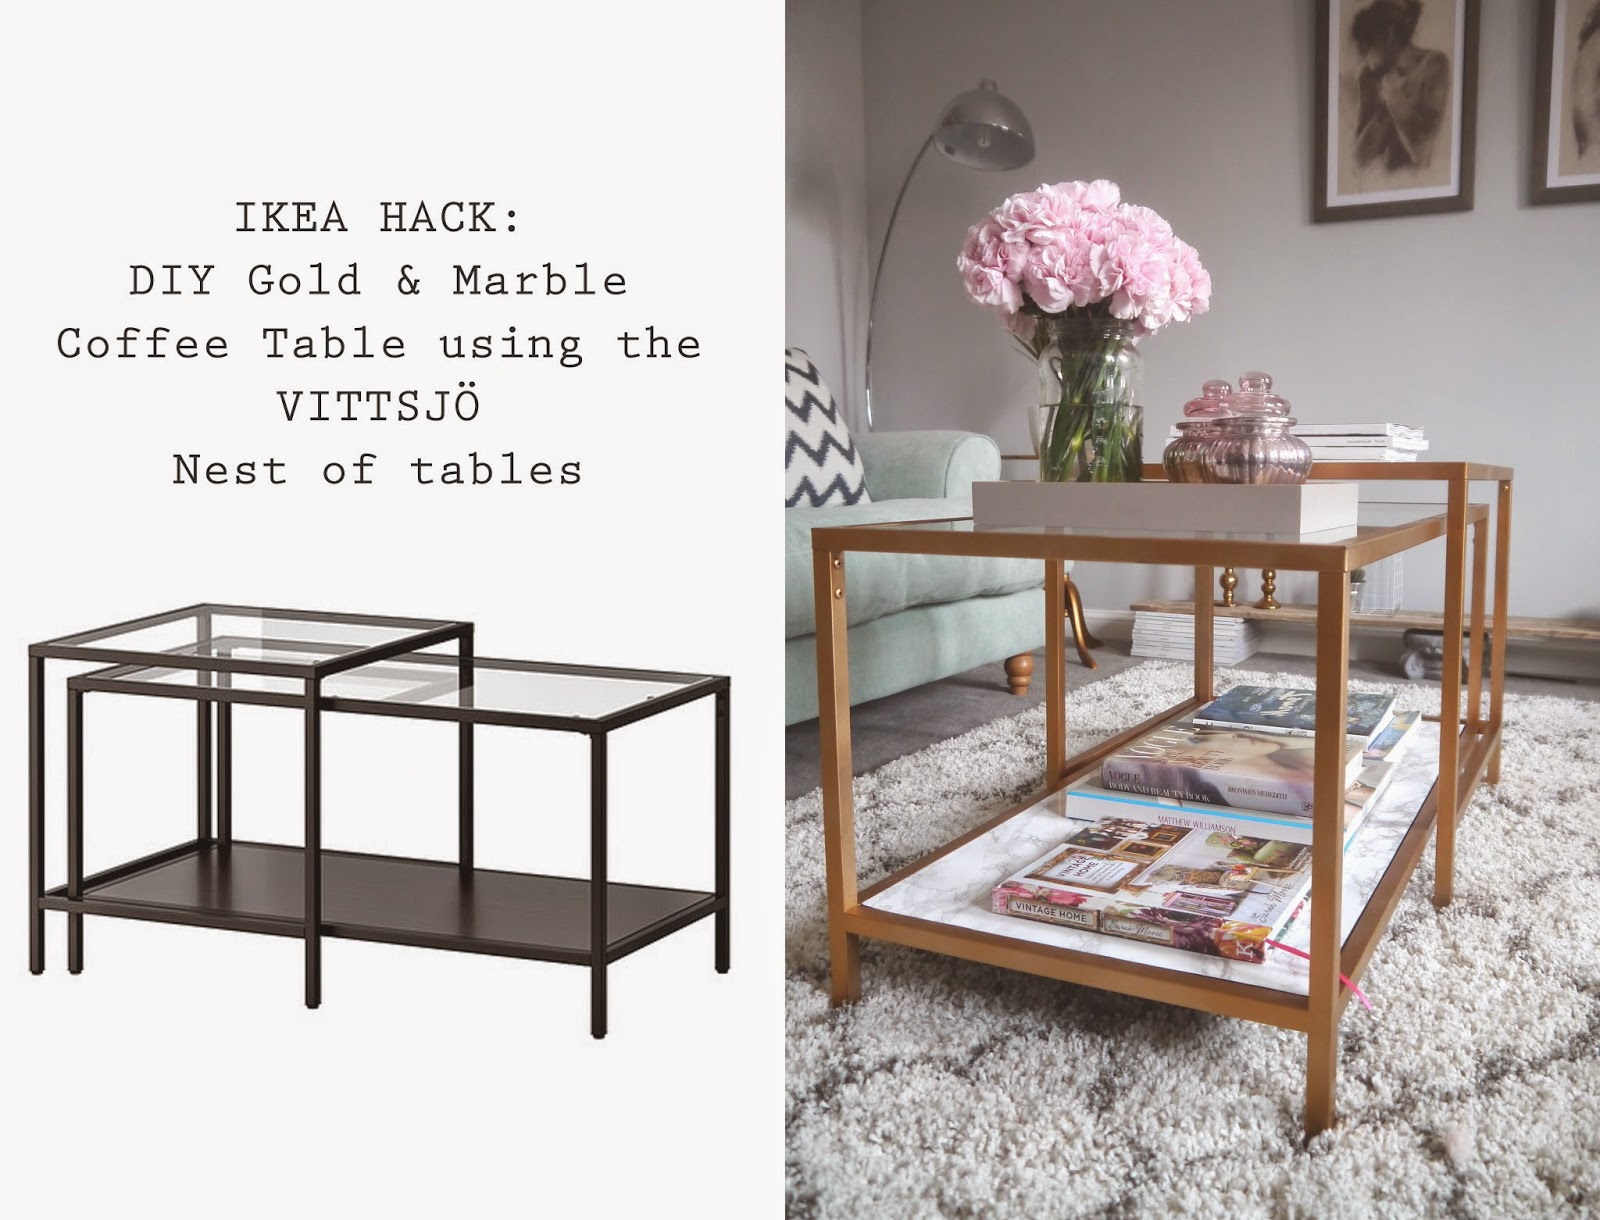 IKEA HACK: A GOLD & MARBLE COFFEE TABLE